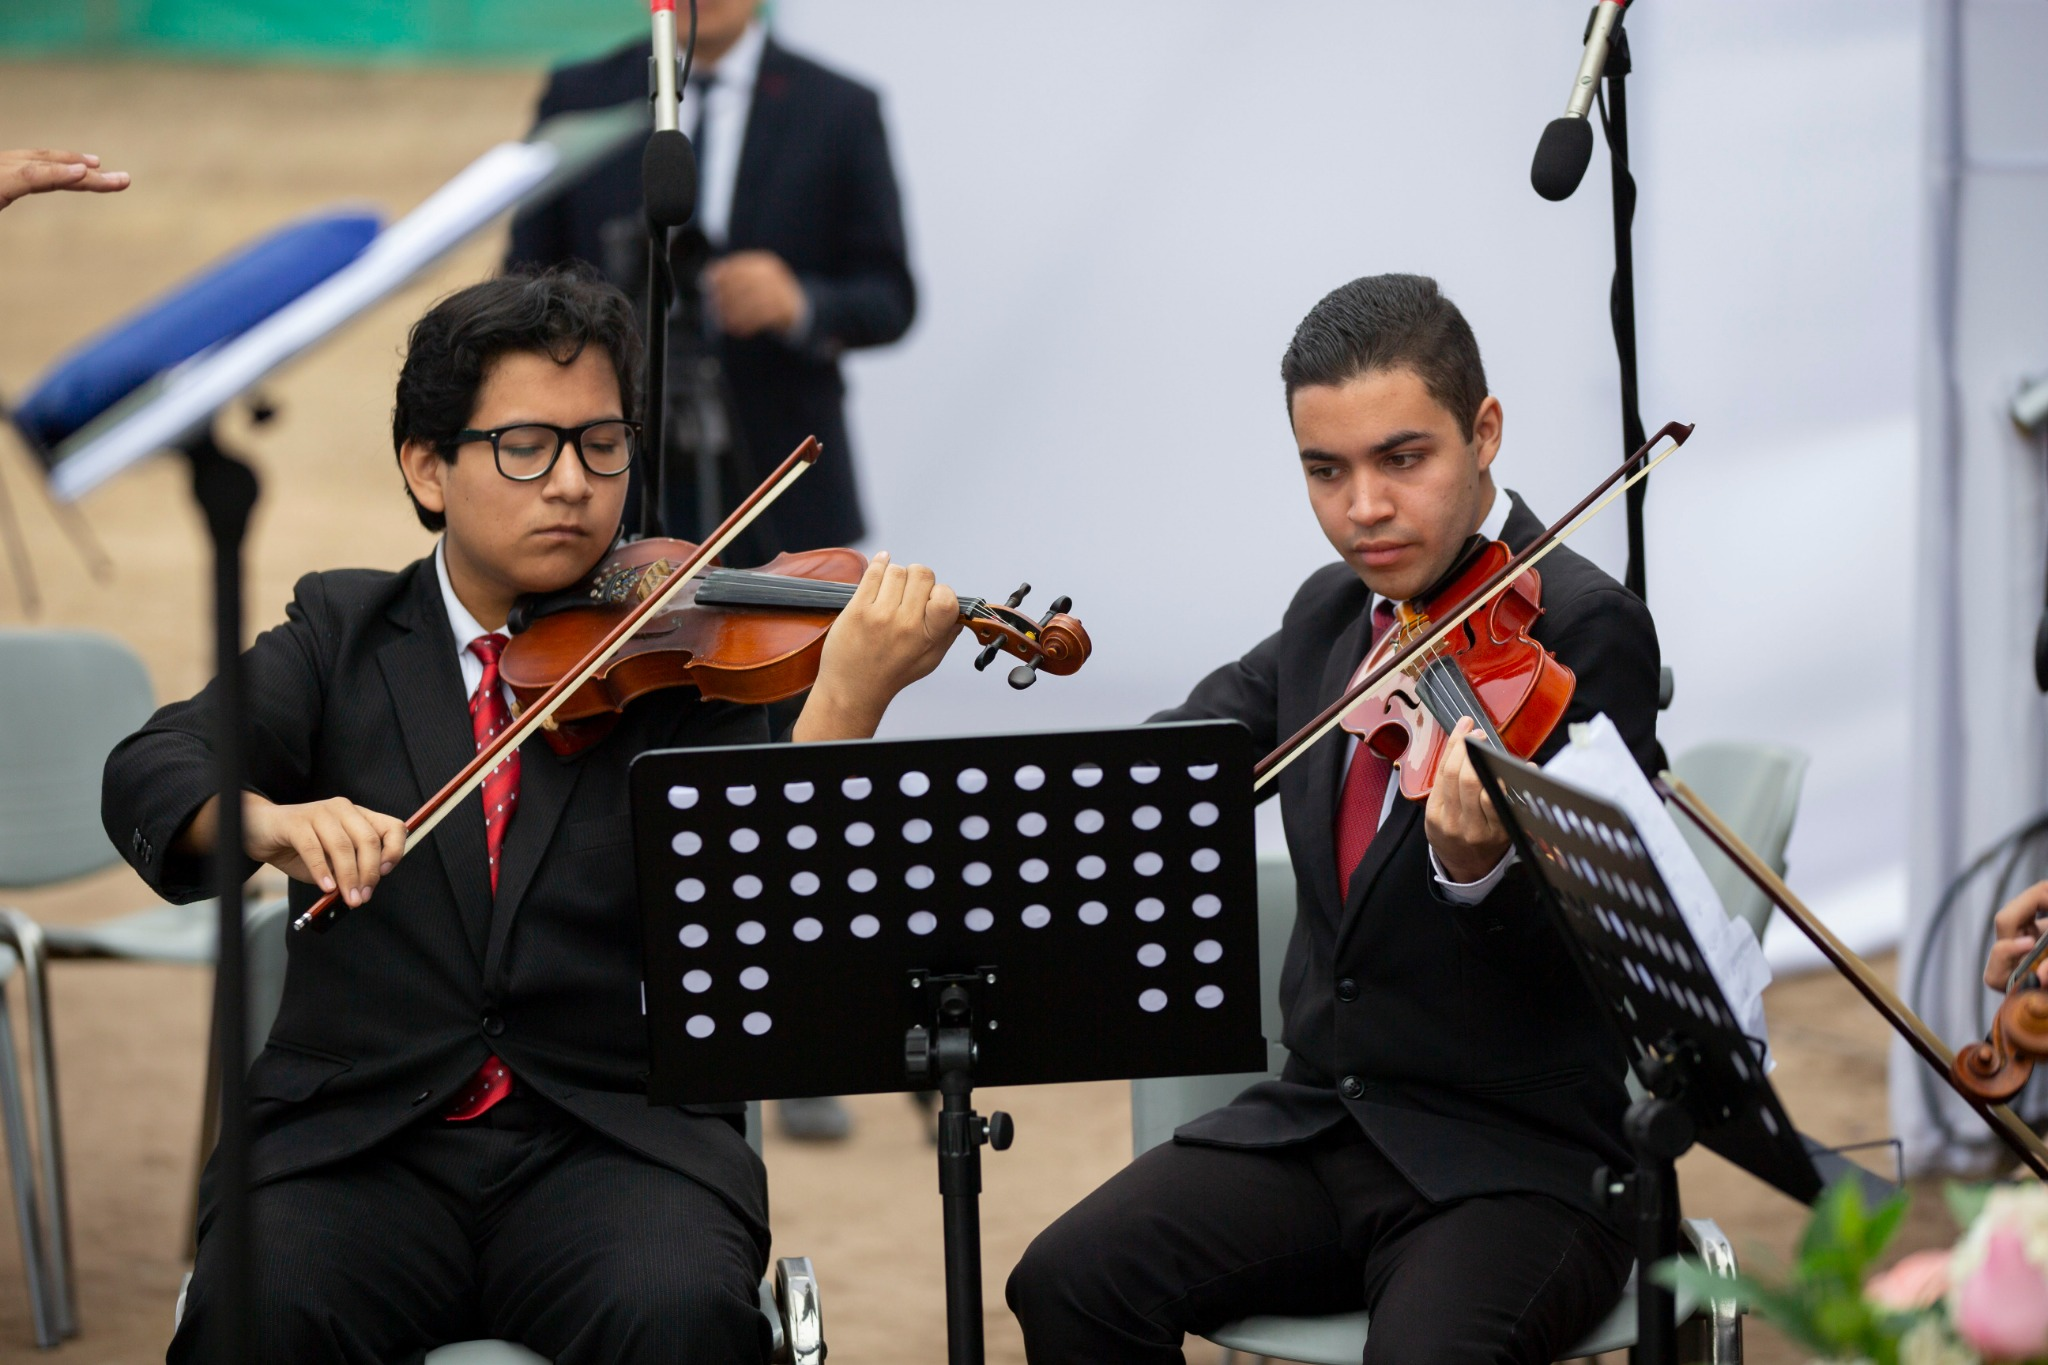 A choir and youth orchestra of Latter-day Saints provide music for the groundbreaking ceremony of the Lima Peru Los Olivos Temple on Saturday, June 8, 2019.